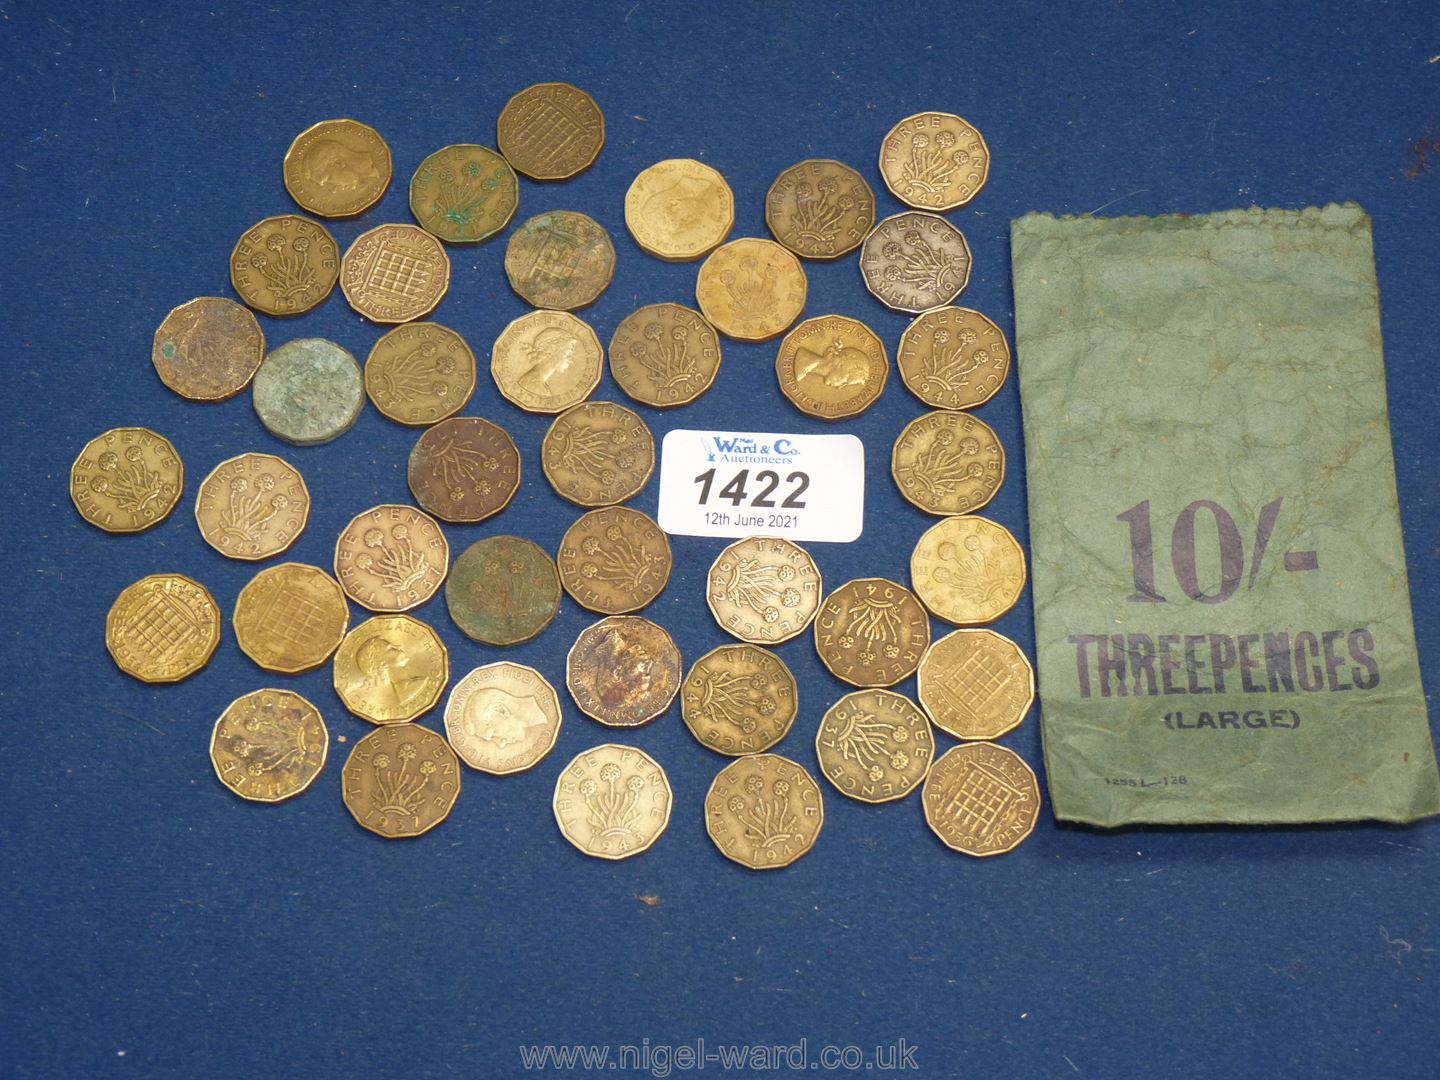 A quantity of pre decimal coins including 10/6- in threepenny bits,